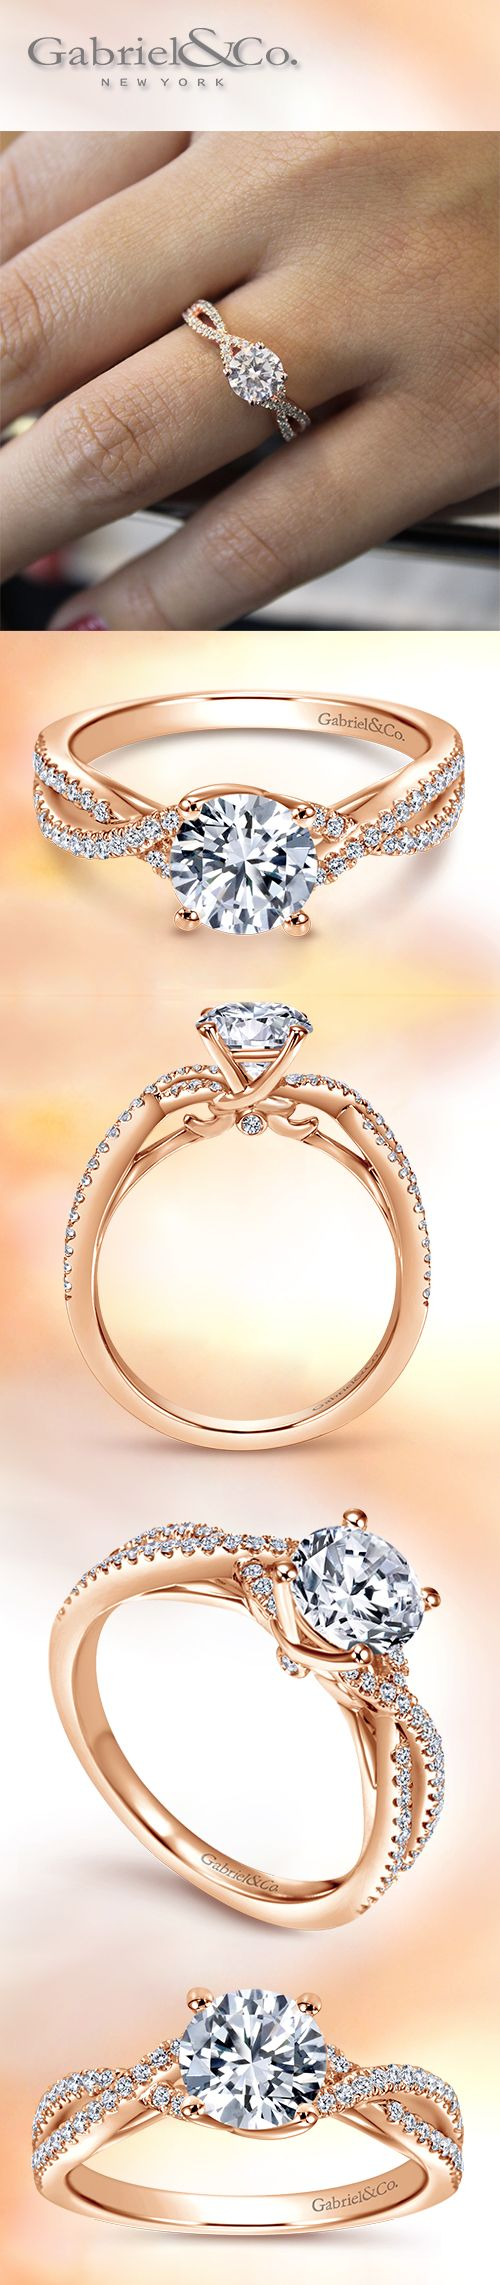 Gabriel & Co. - Voted #1 Most Preferred Bridal Brand. A contemporary 14k Pink Gold Round-Cut Diamond Engagement Ring encrusted with pavé diamonds on its twisted design. Style: ER7546K44JJ